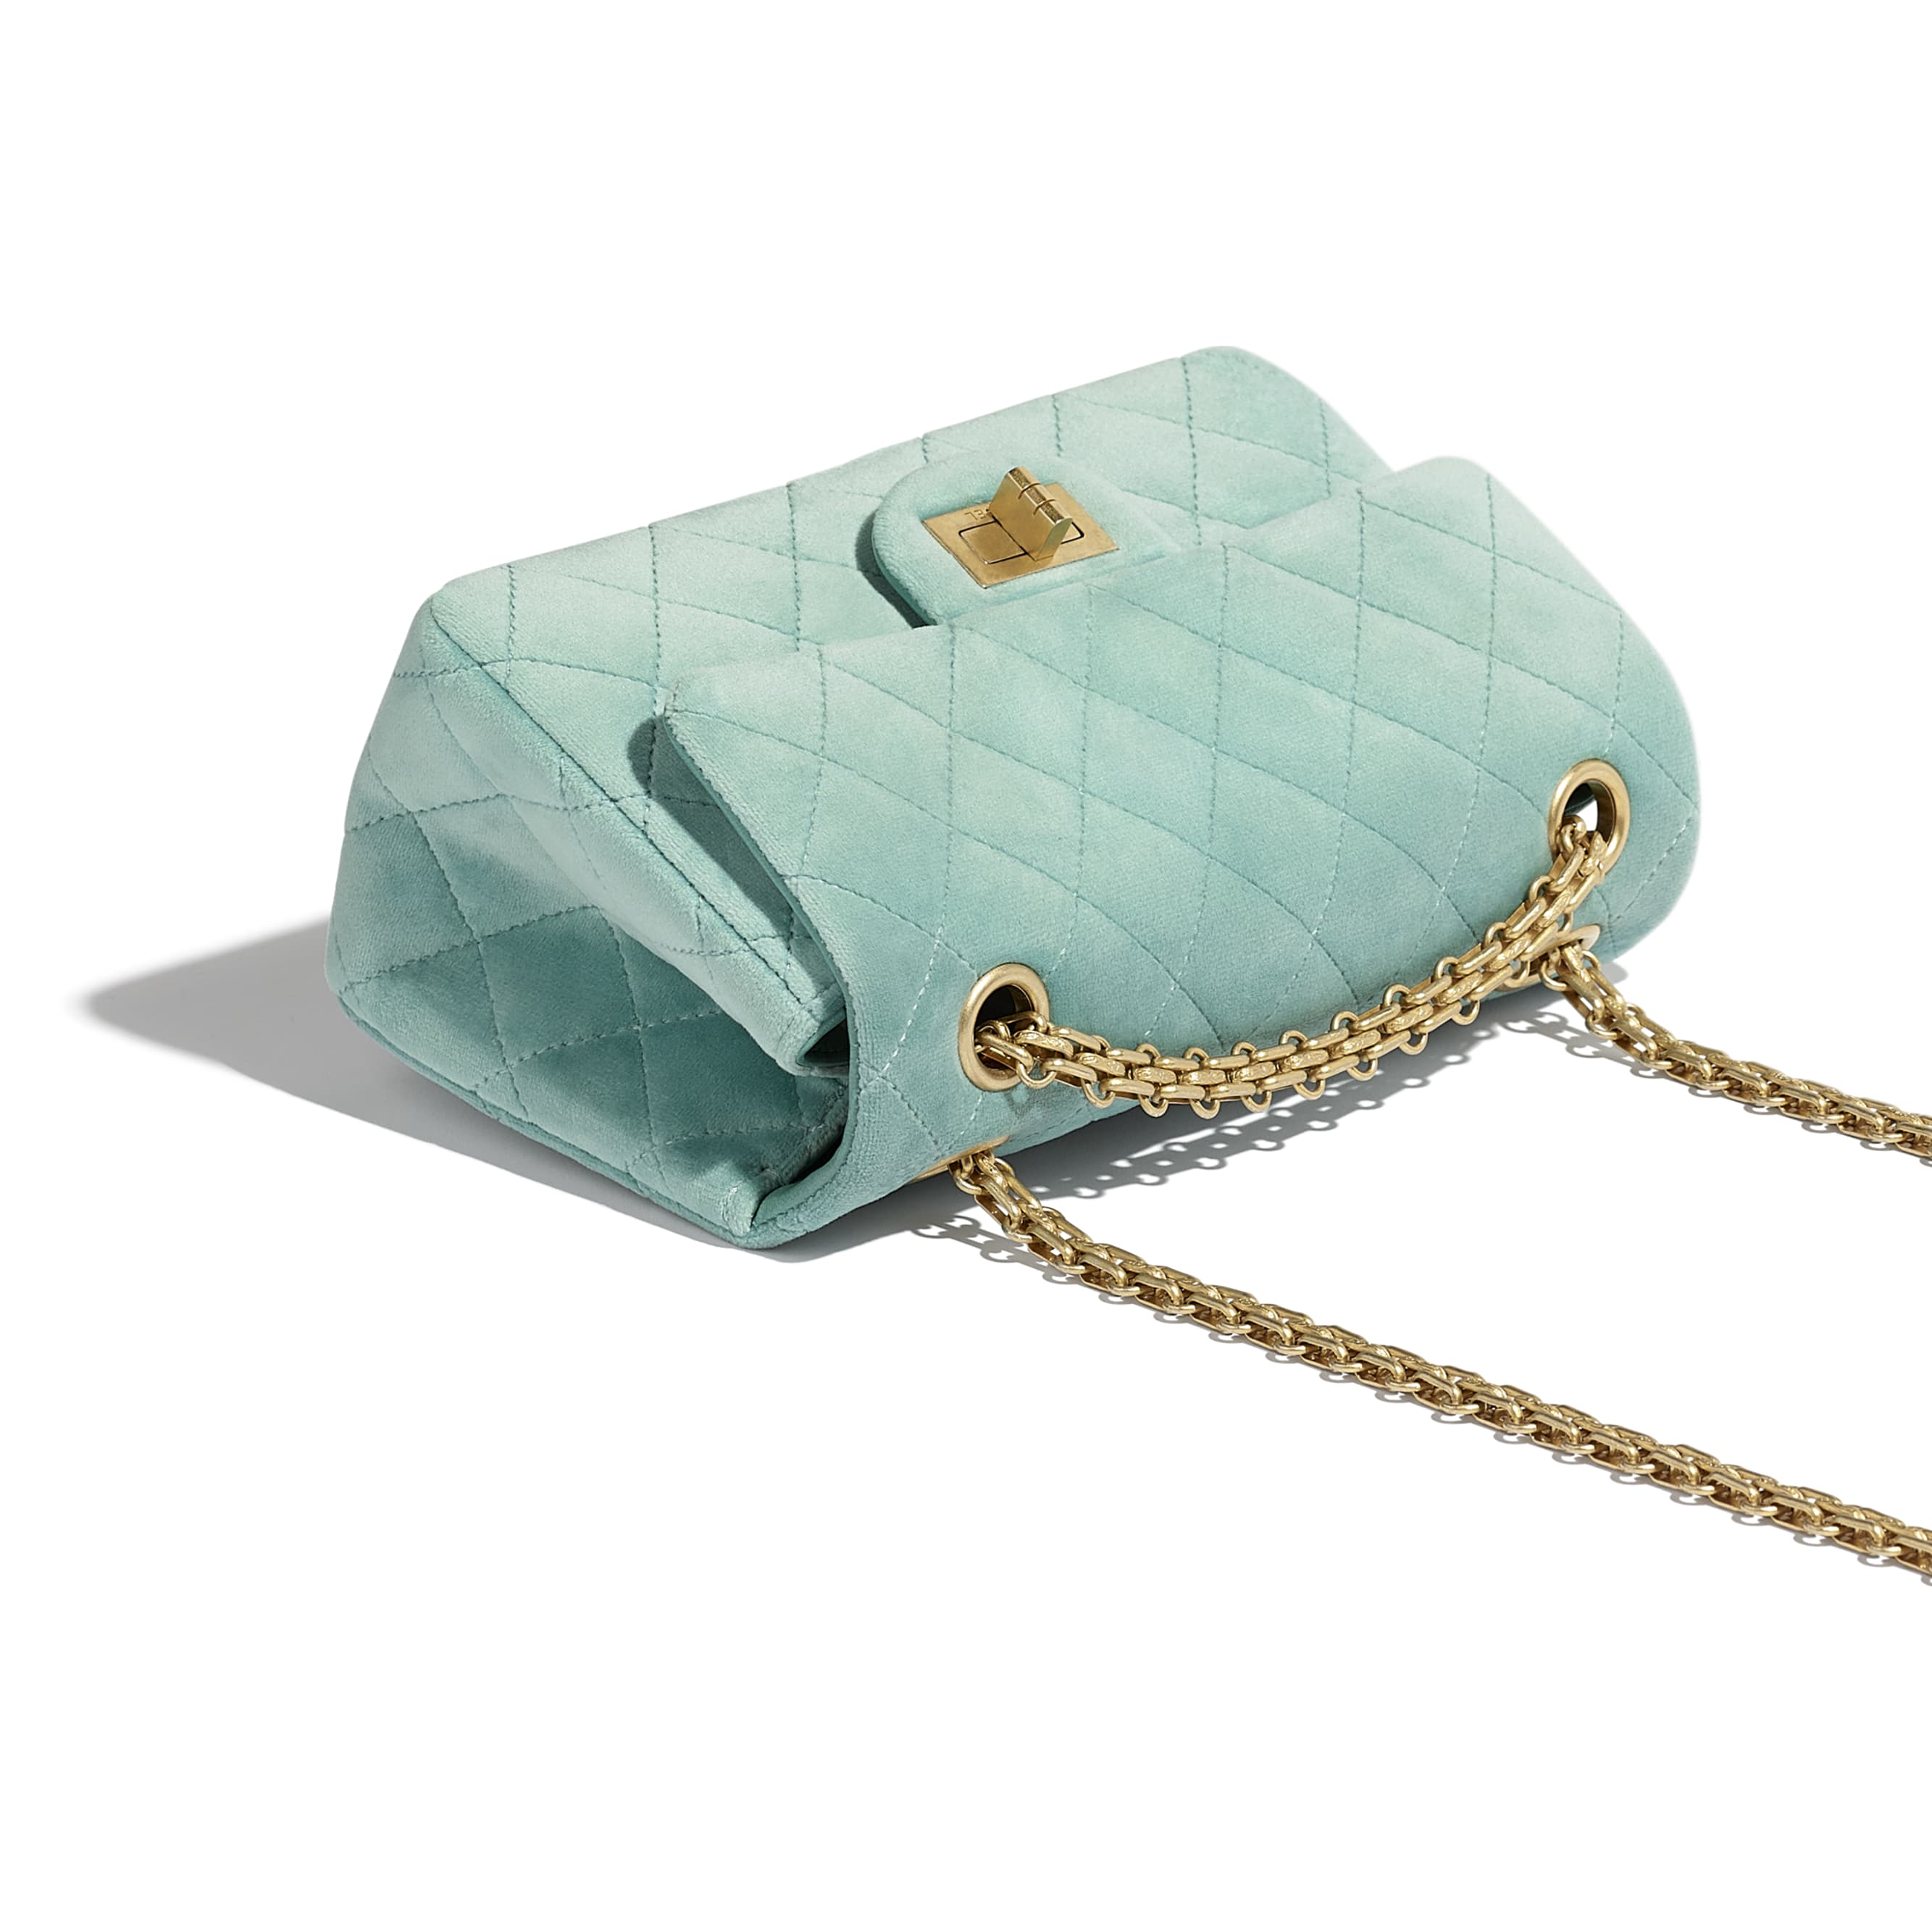 Small 2.55 Handbag - Light Blue - Velvet & Gold Metal - Extra view - see standard sized version